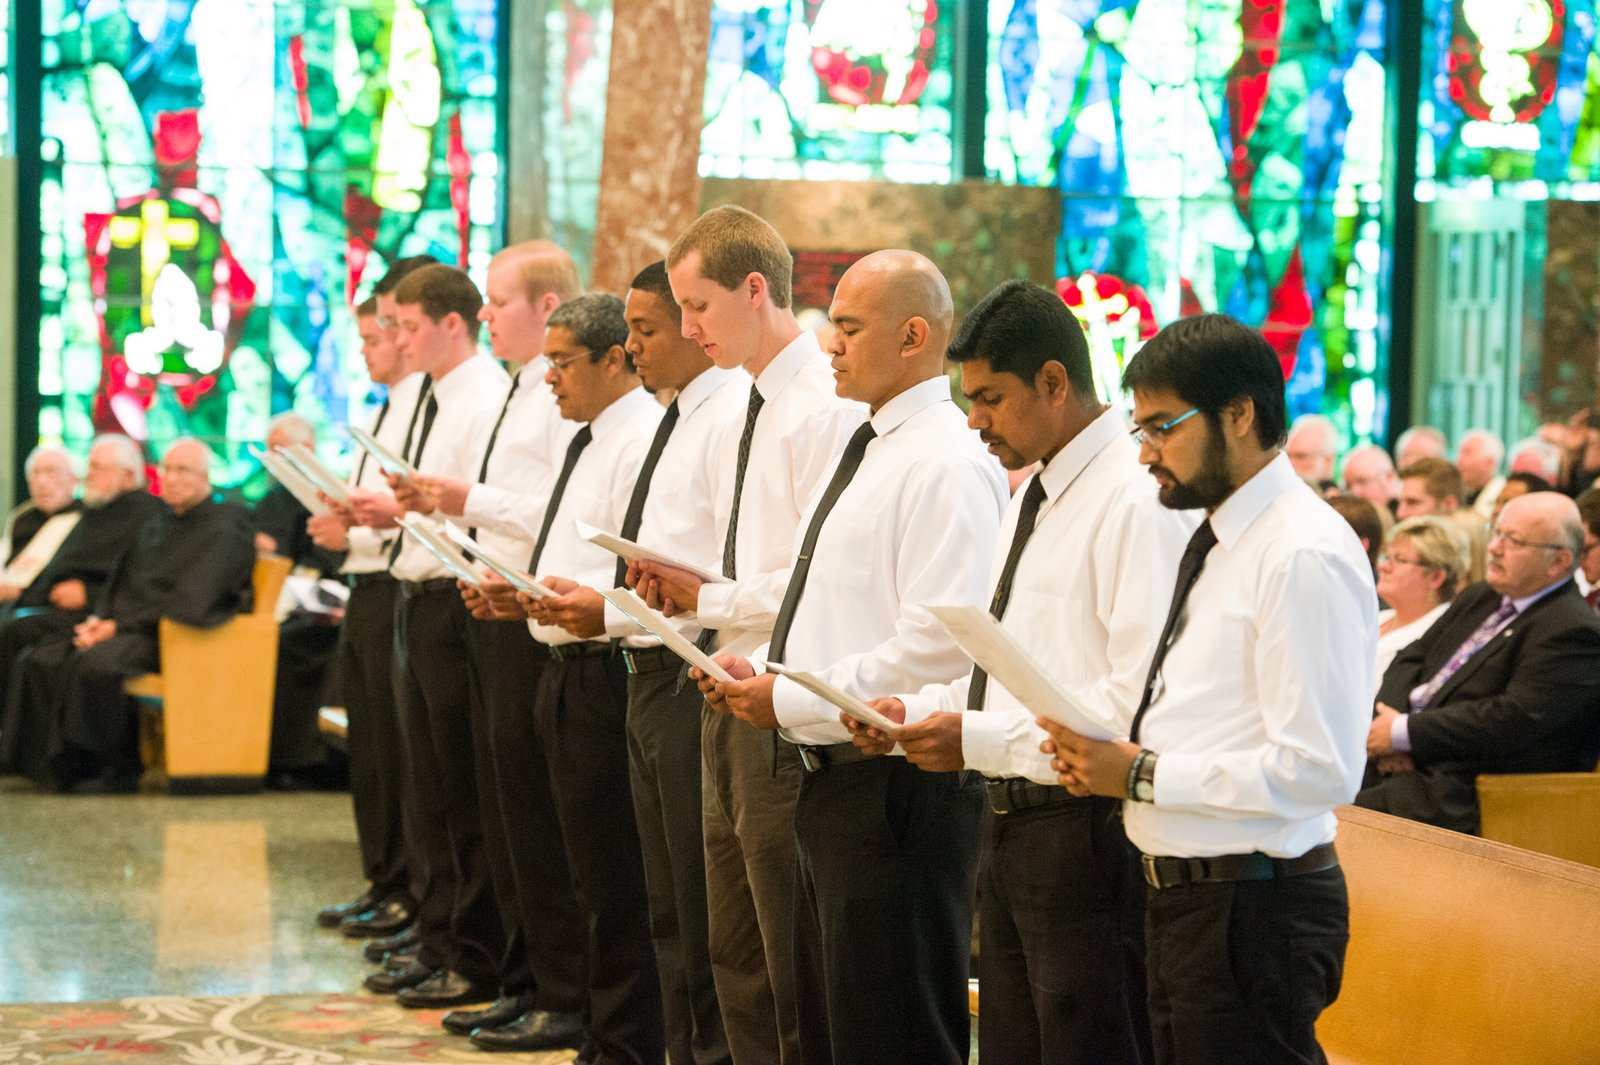 The ten men prepared to profess vows (one professed his later in his home country of Japan)